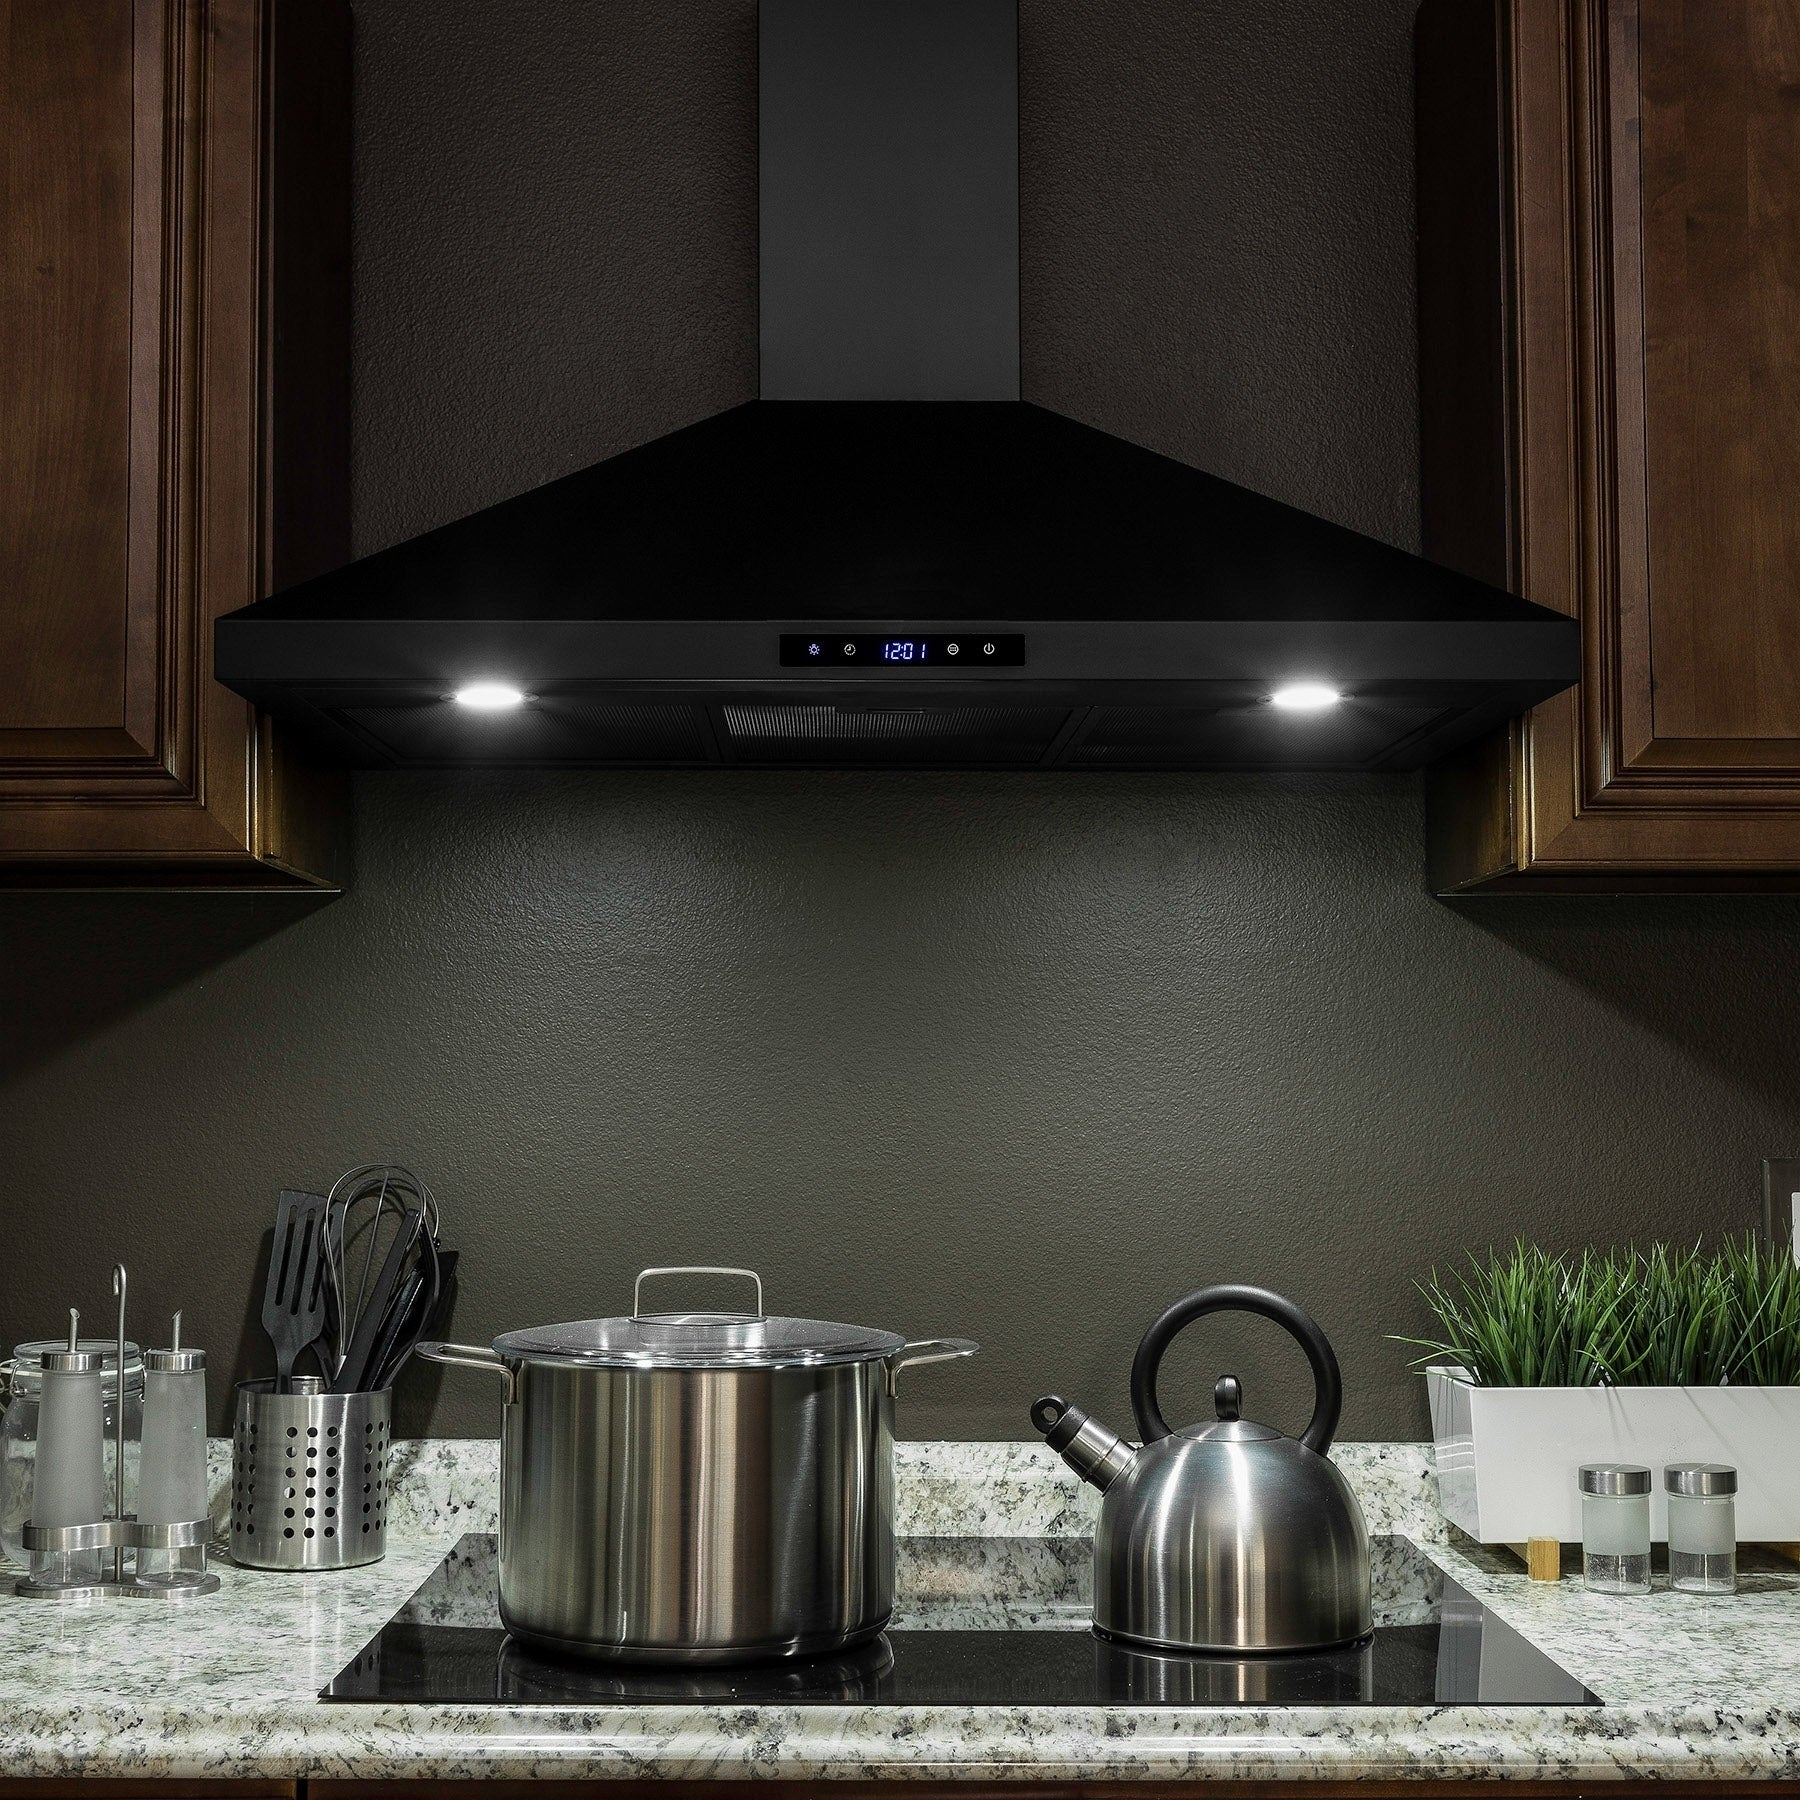 Golden Vantage Rh0328 36 Black Stainless Steel Wall Mount Range Hood Touch Panel Mesh Filters Kitchen Vent On Free Shipping Today